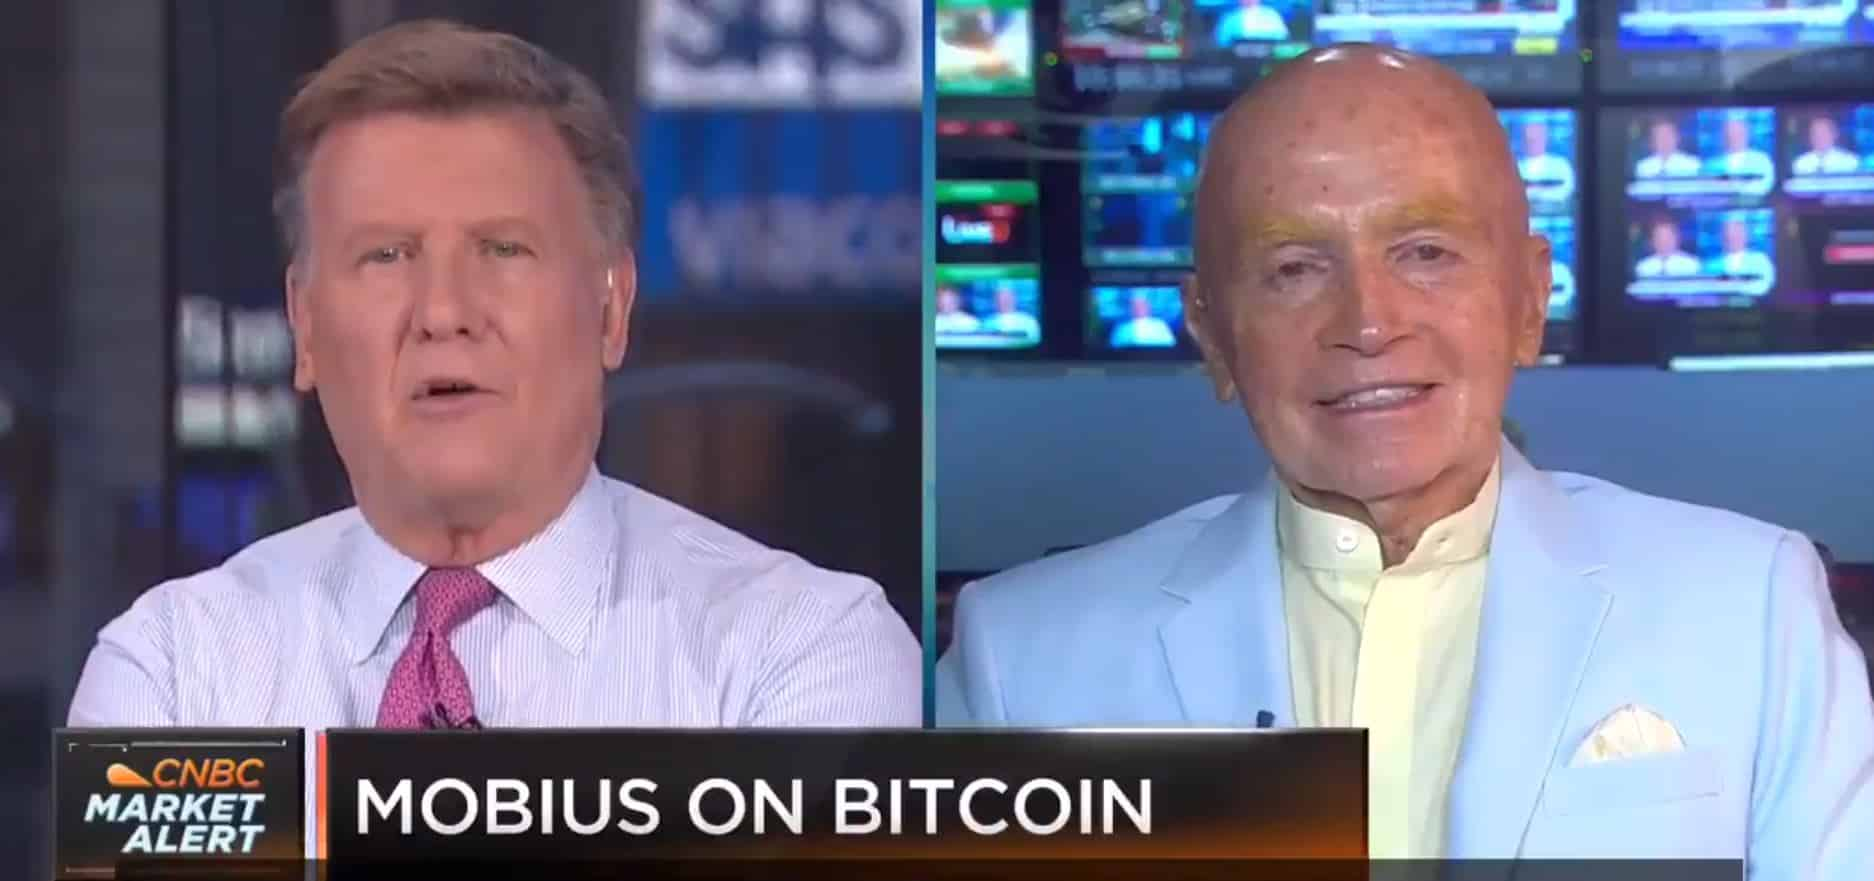 Mark Mobius Says, Crypto Must be Backed by Gold - Here's One Such Regulated Token